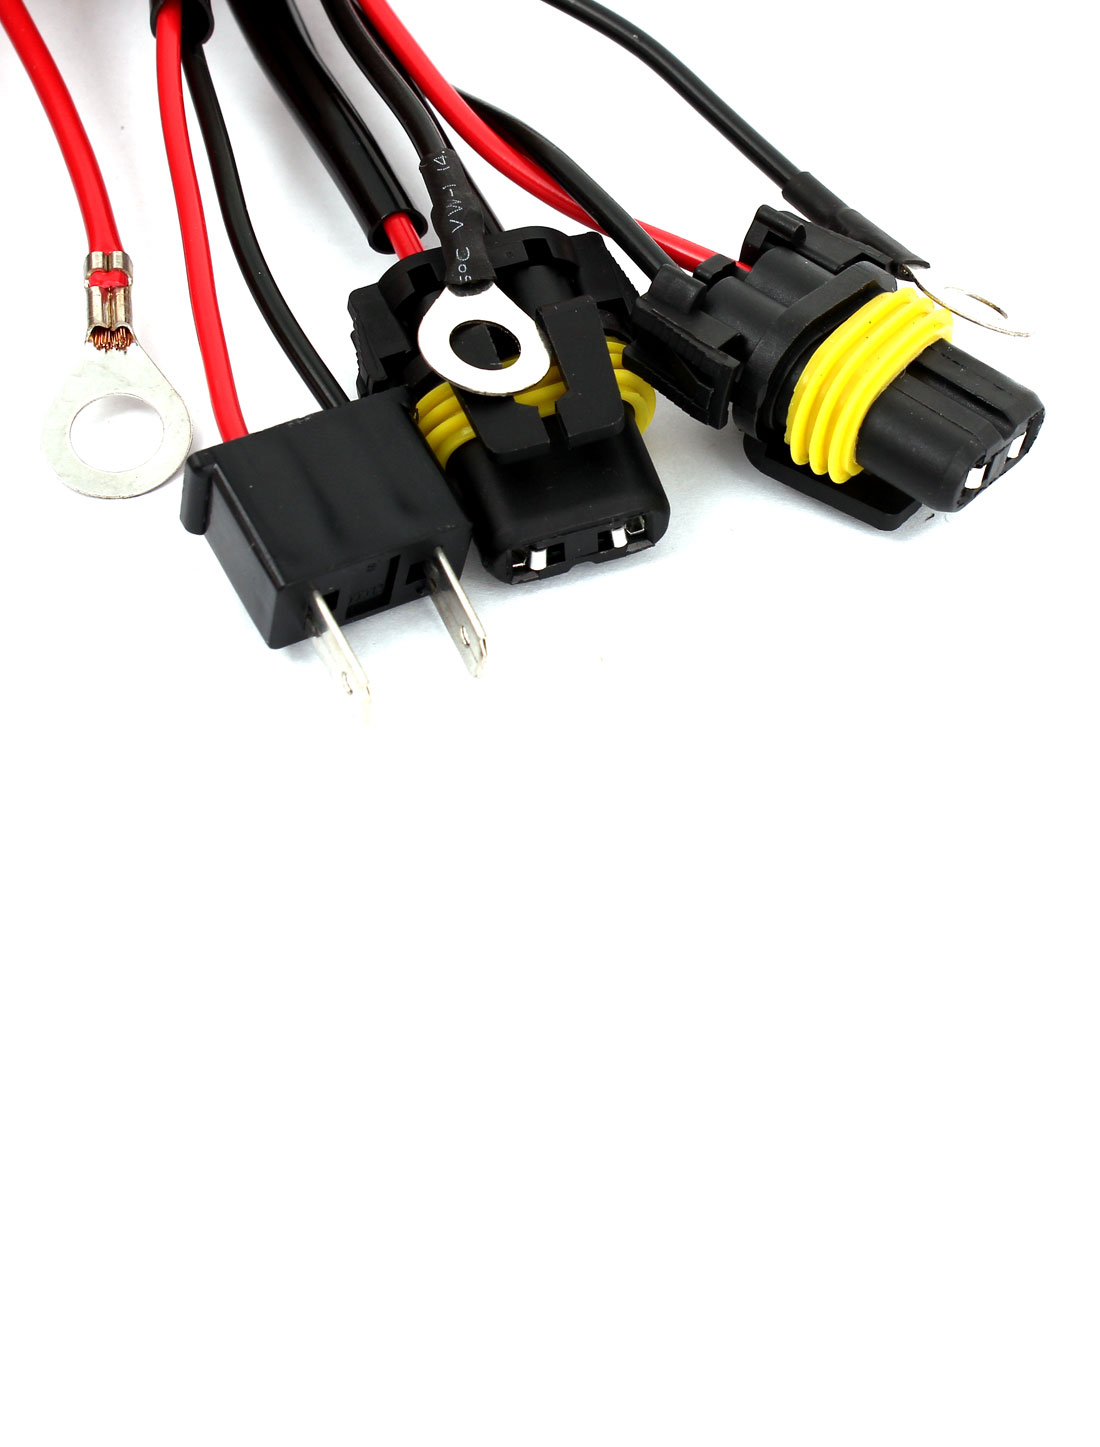 hight resolution of h7 xenon hid conversion kit relay wiring harness wire upgrade pack for car walmart canada